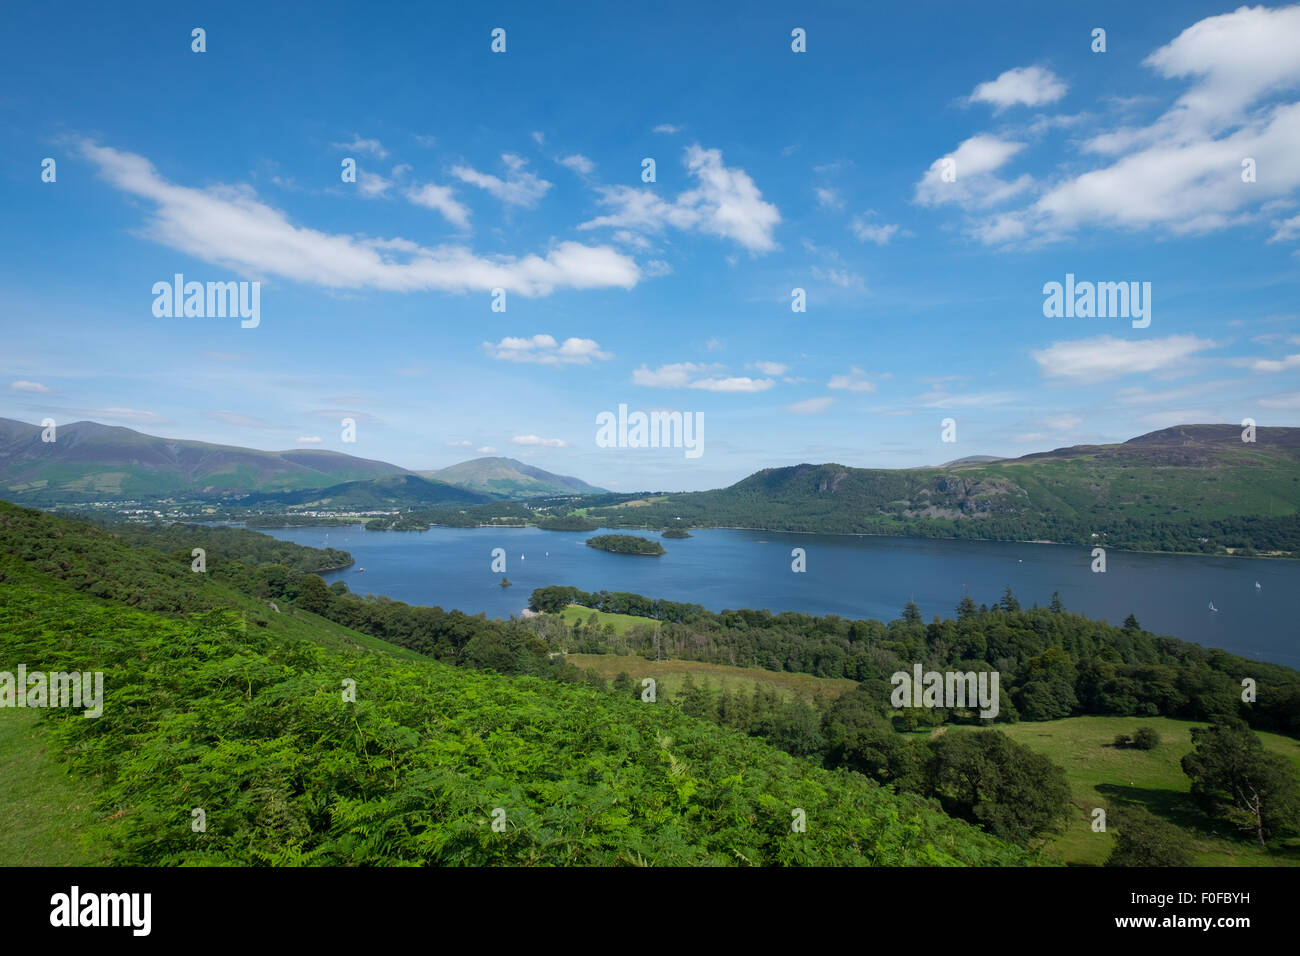 The view of Derwentwater from Catbells fell near Keswick in the Lake District - Stock Image